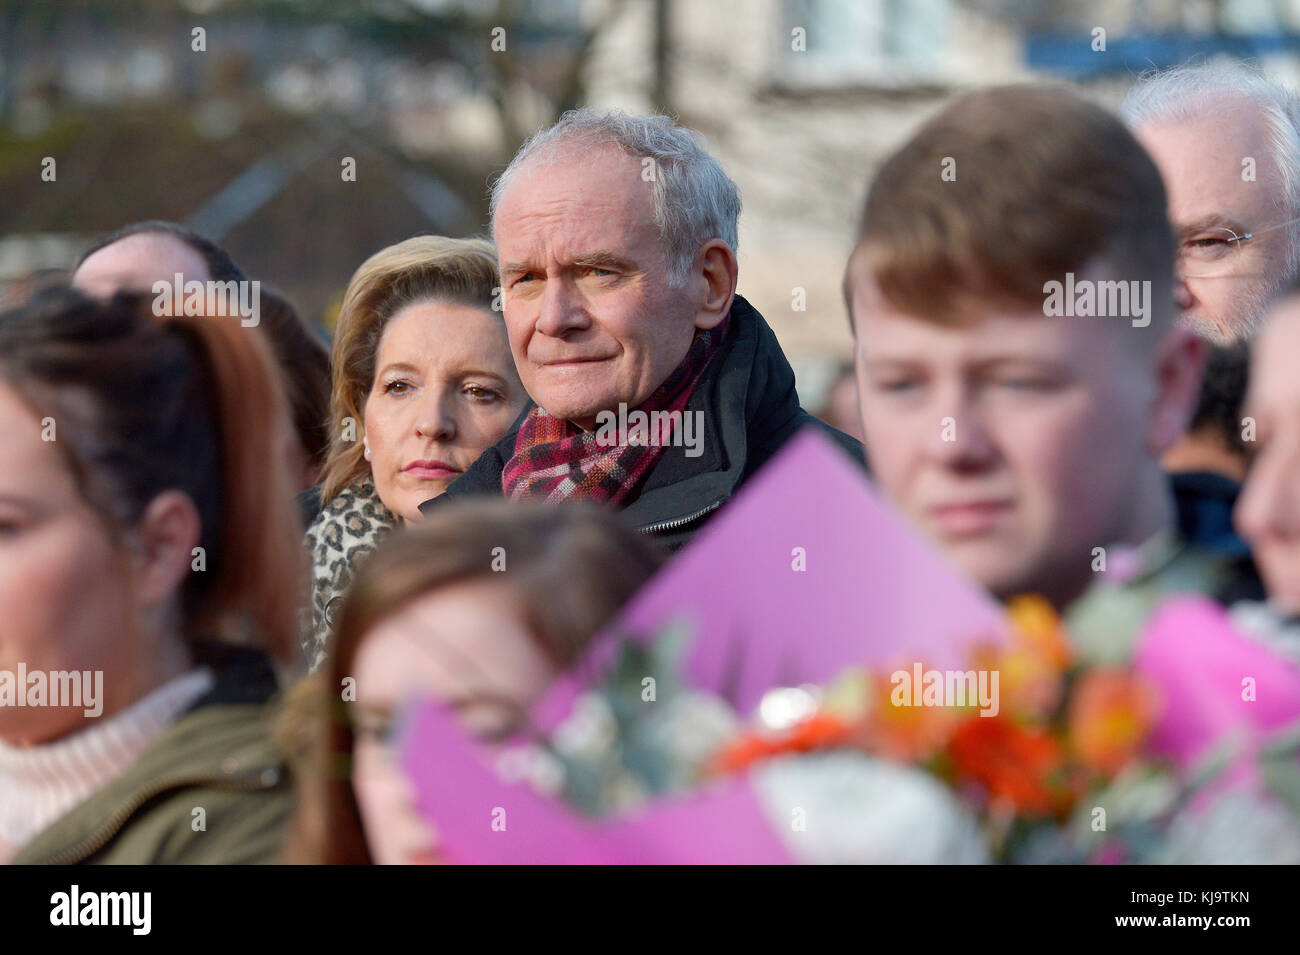 Sinn Fein's Martin McGuinness attending a Bloody Sunday  commemoration service in Londonderry in January 2017. - Stock Image